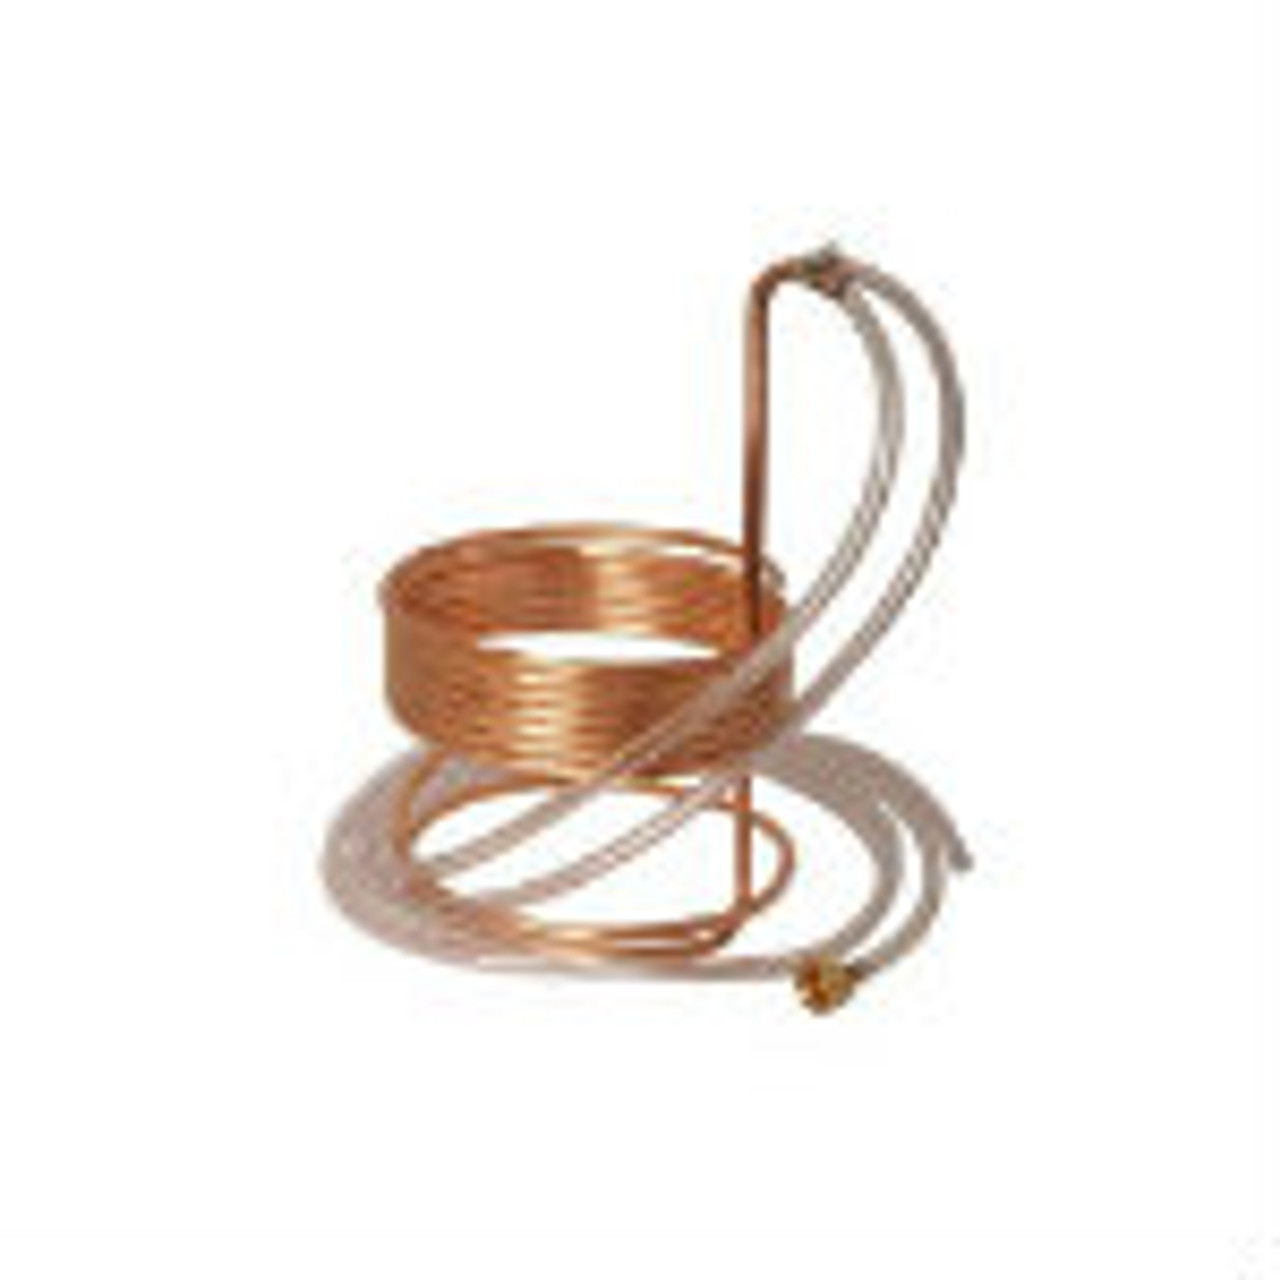 25 Copper Immersion Chiller With Tubing And Fittings